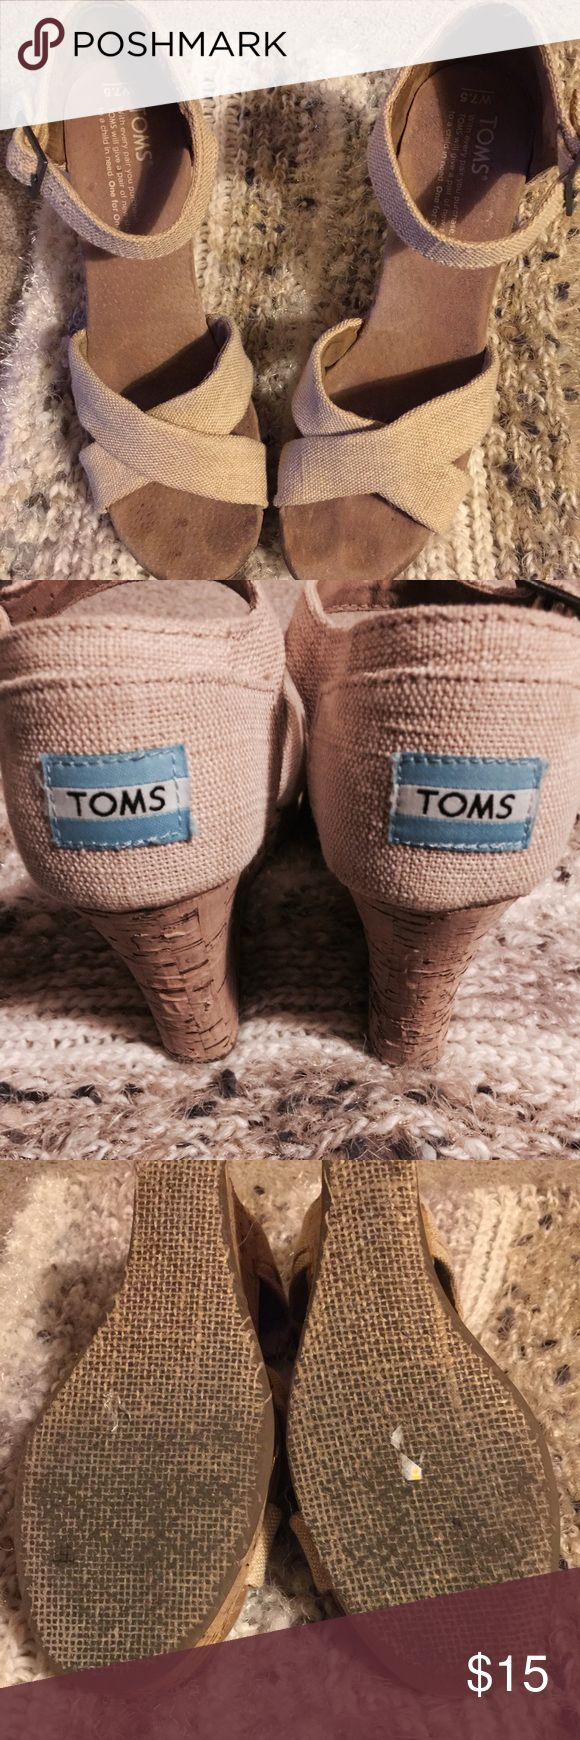 Toms beige wedges strappy sandals 7.5W Slight peeling in wedge. Some toe marks. Other than that, excellent Toms! Too big on me, hence the toe imprints! TOMS Shoes Sandals